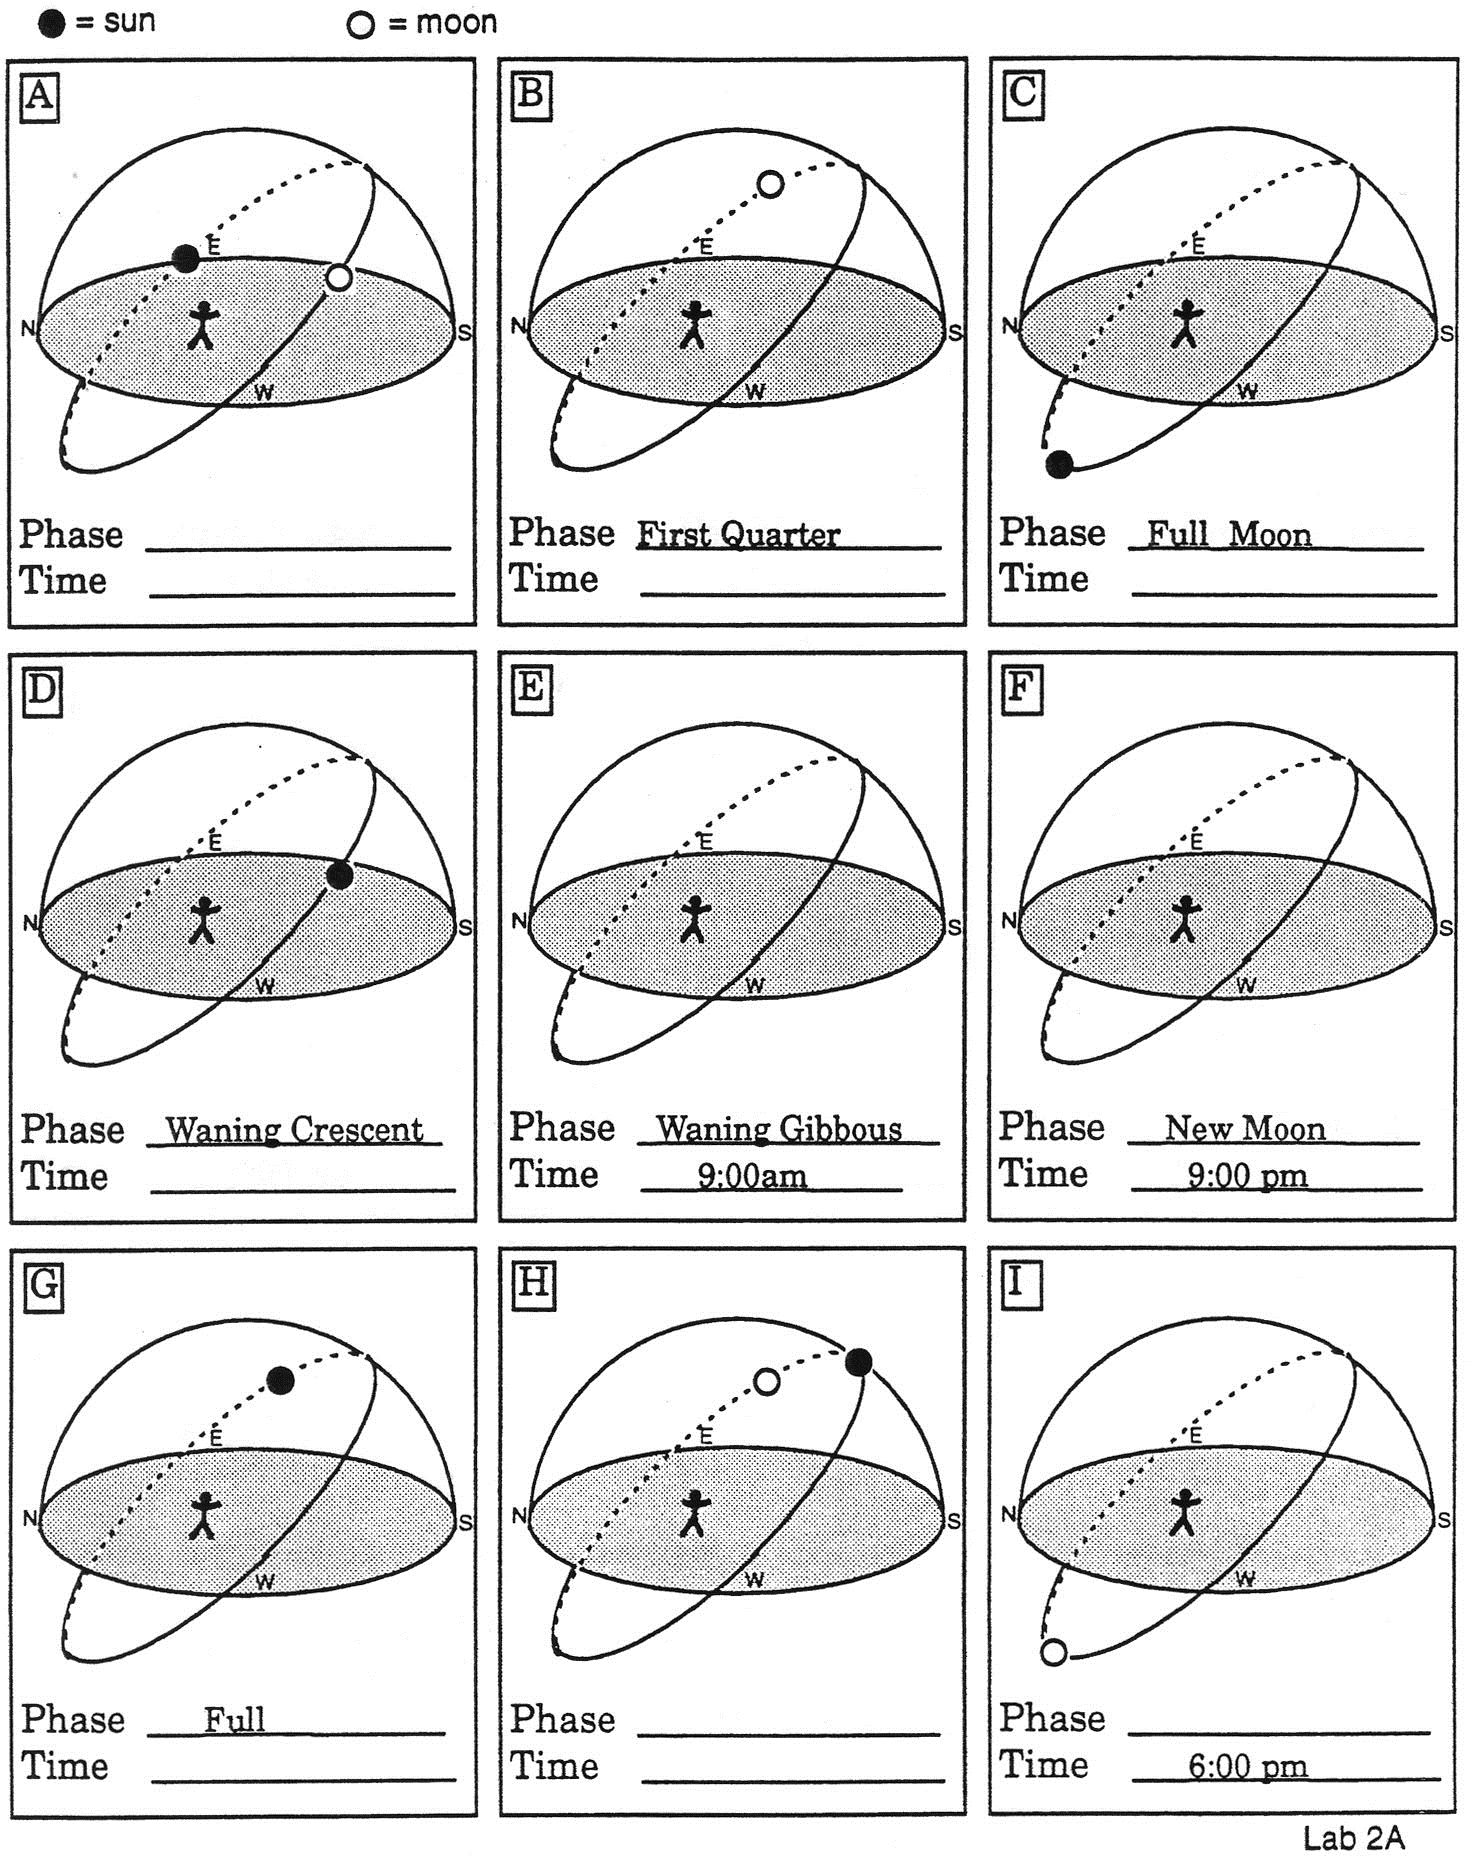 Experiment Two Lunar Phases Jccc Astronomy Diagram Of Moon Lunarphaseexercises Page1